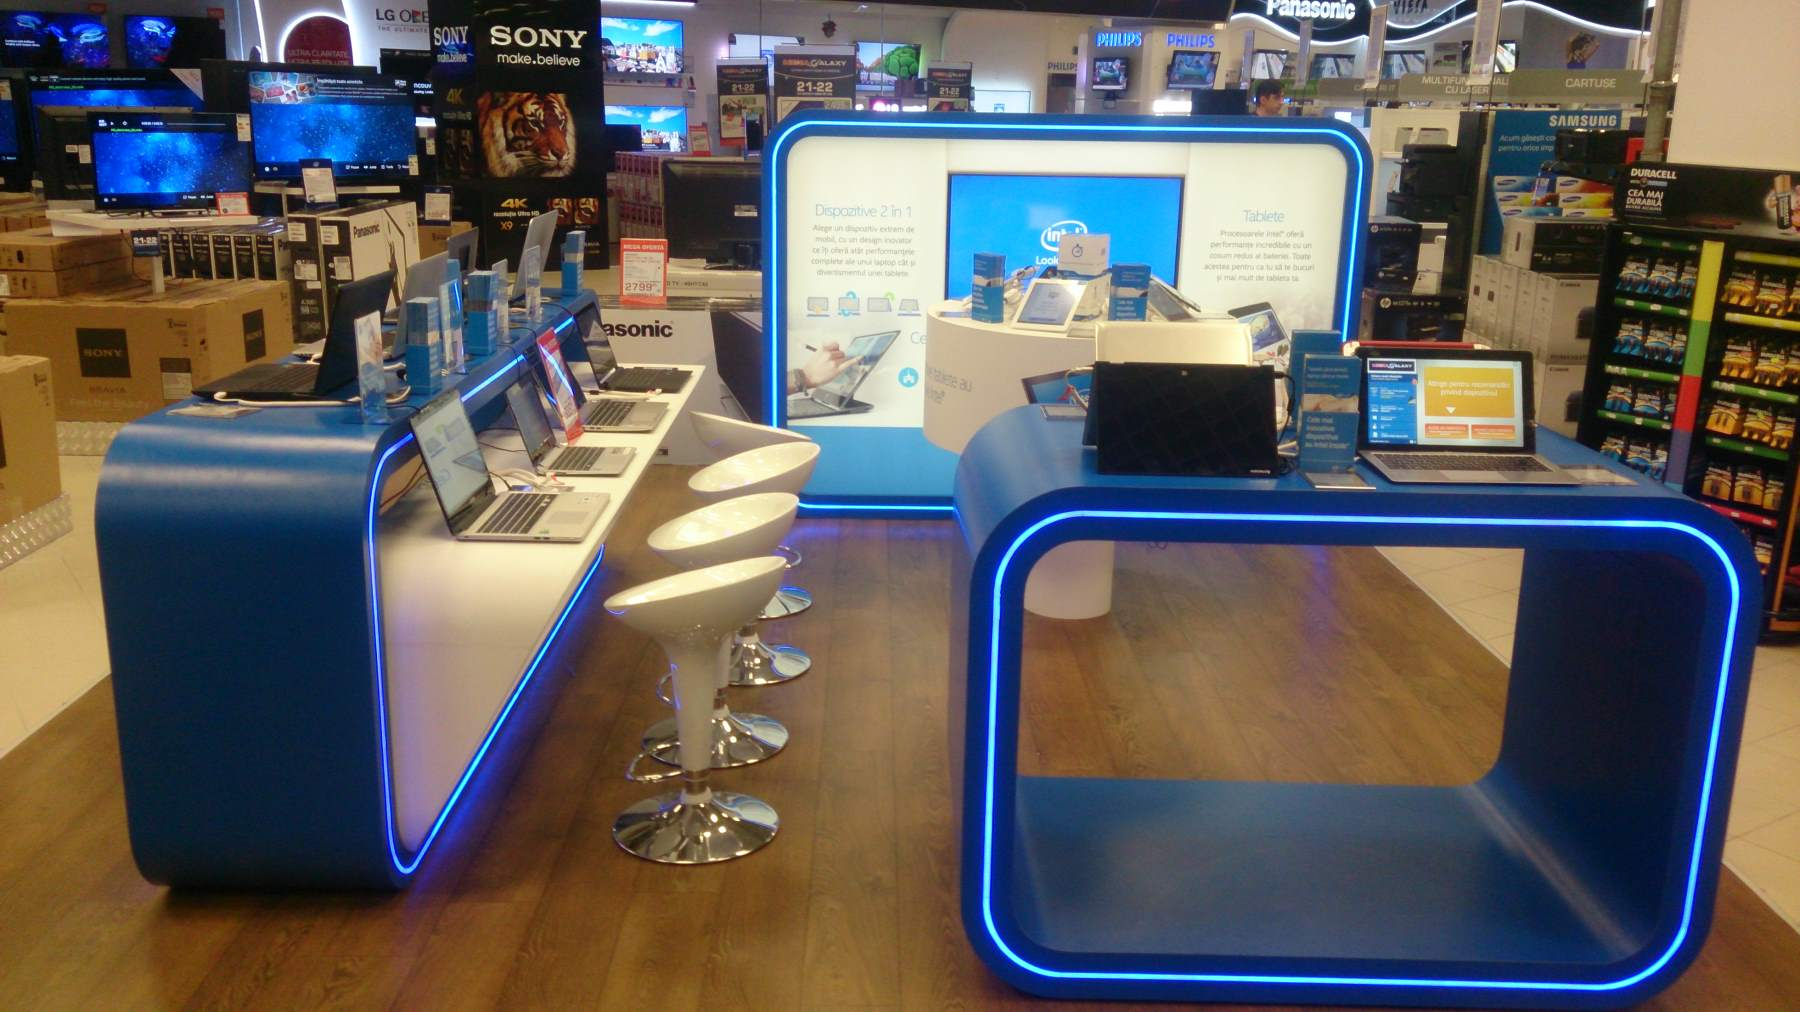 mobilier stand INTEL mall mdf hpl 007